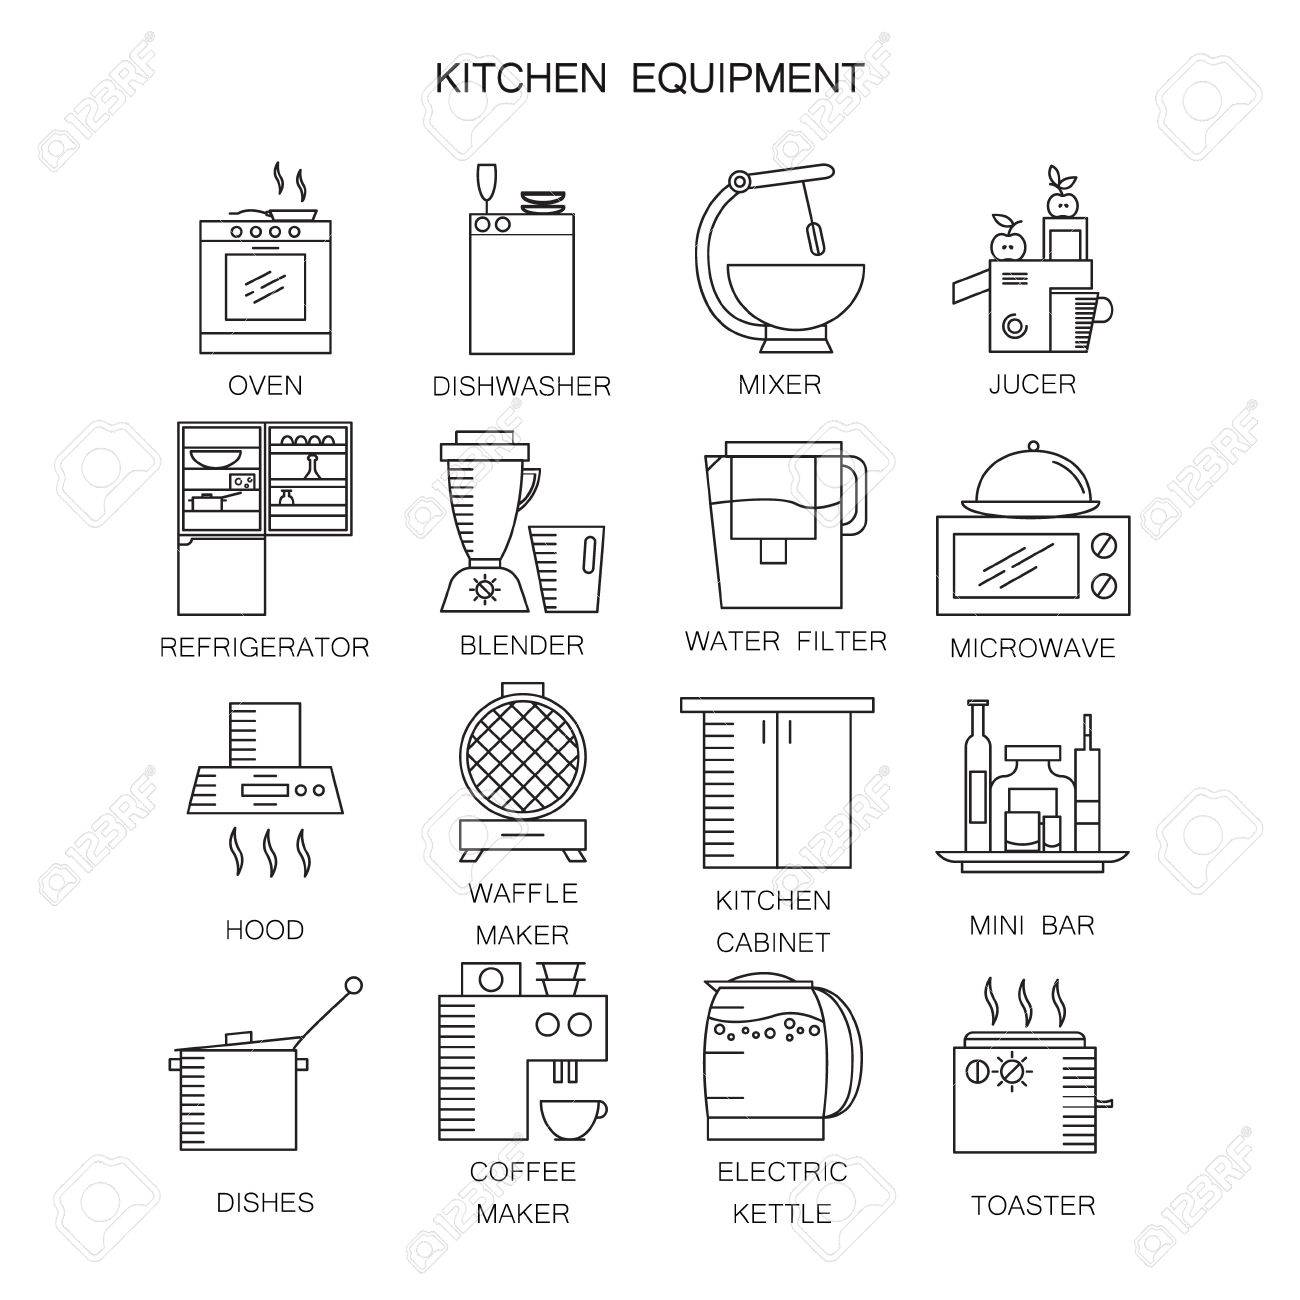 Kitchen Appliances Icon Set Collection Of High Quality Outline Stock Photo Picture And Royalty Free Image Image 65592207